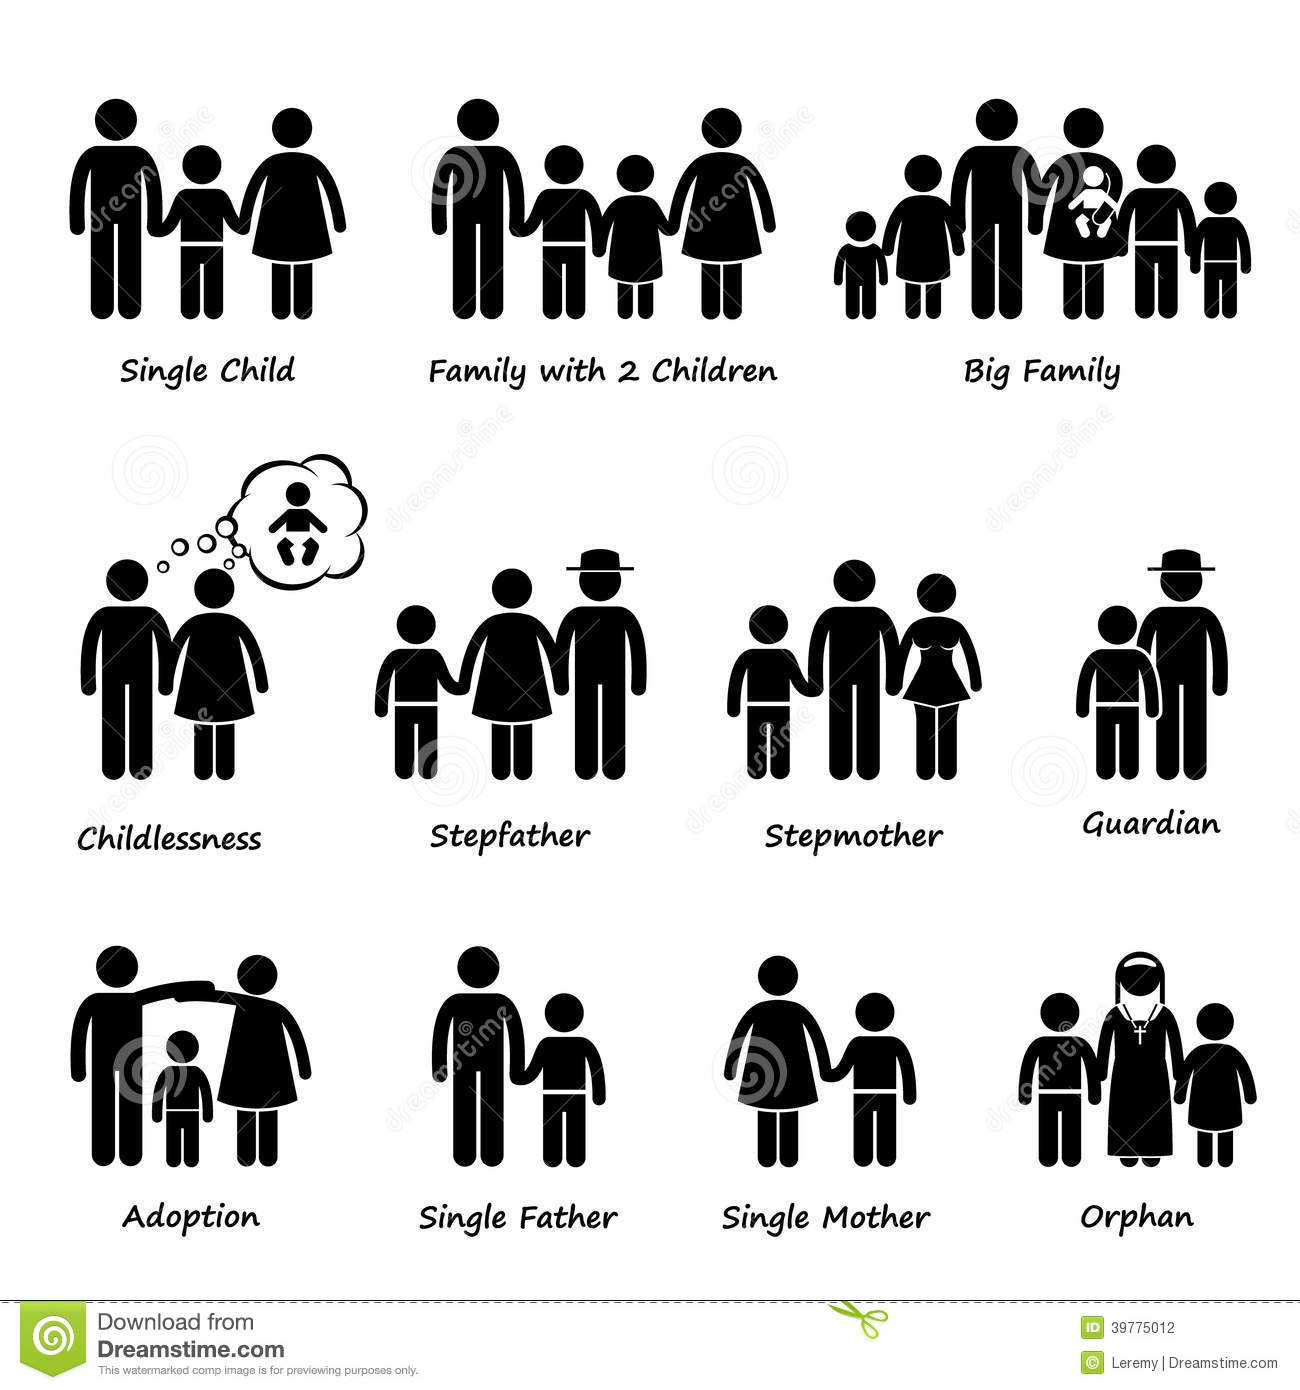 Our English Blog 2 Families